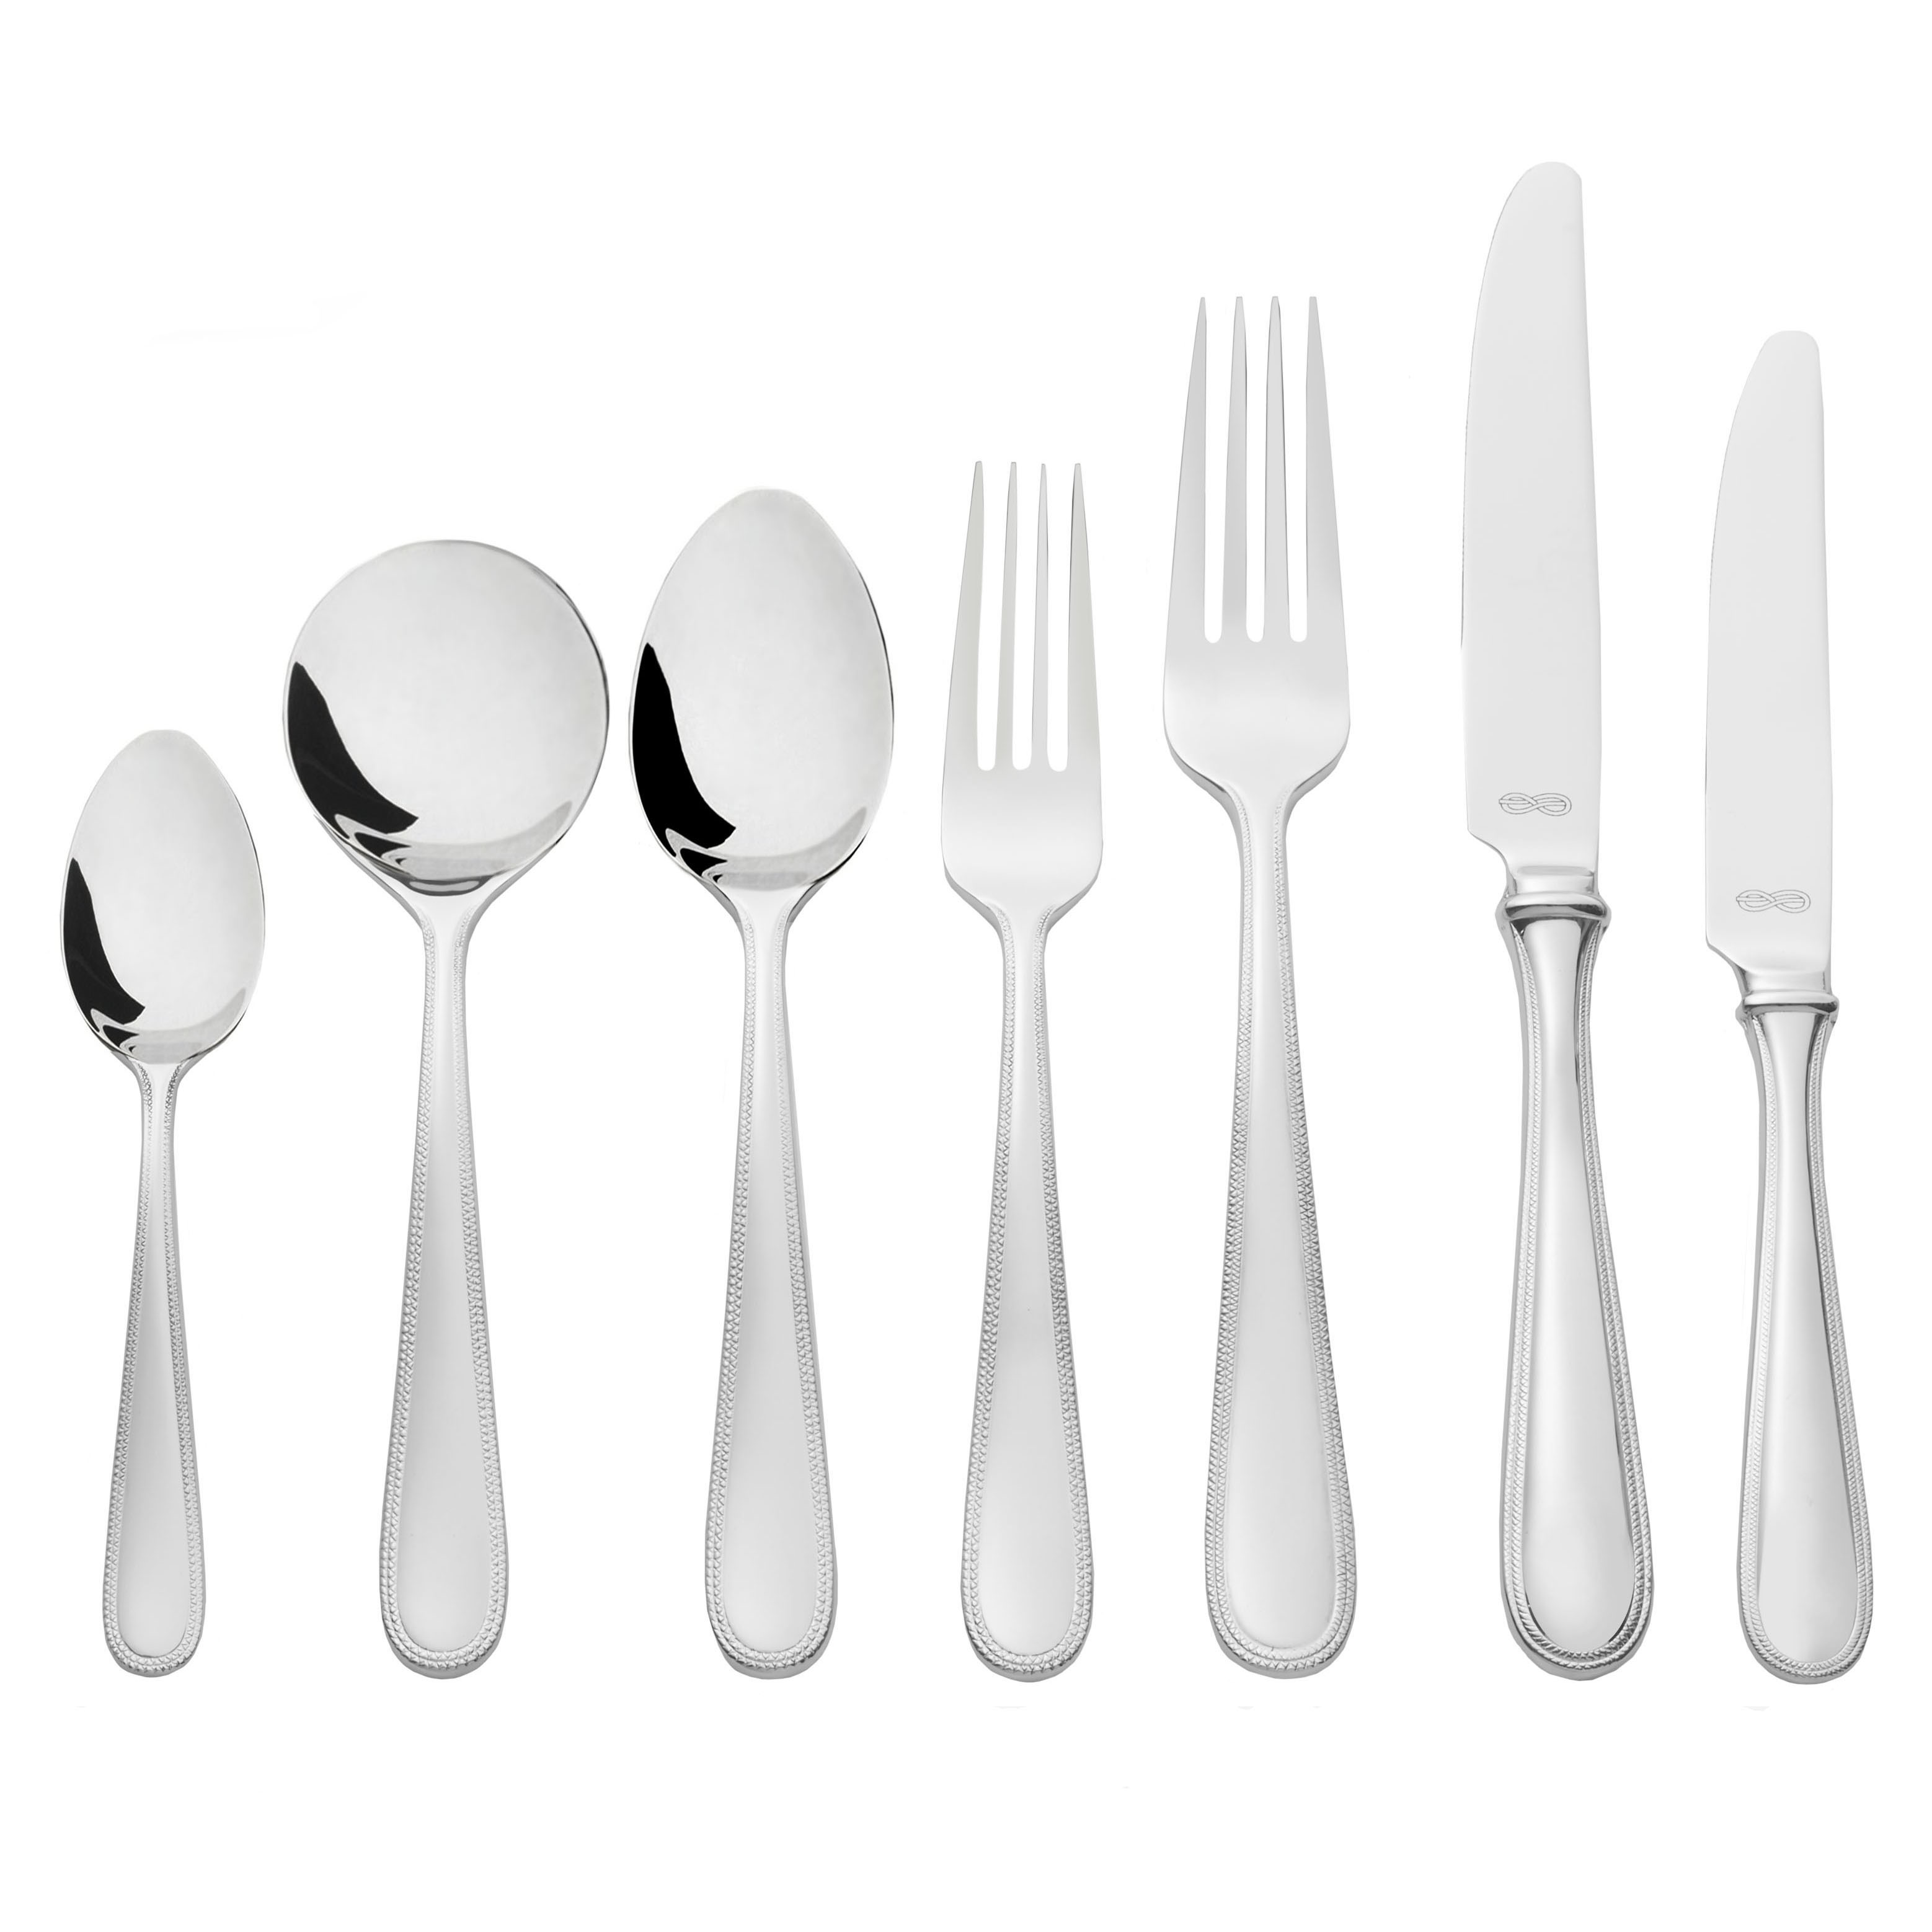 Amazing Cutlery Pictures & Backgrounds